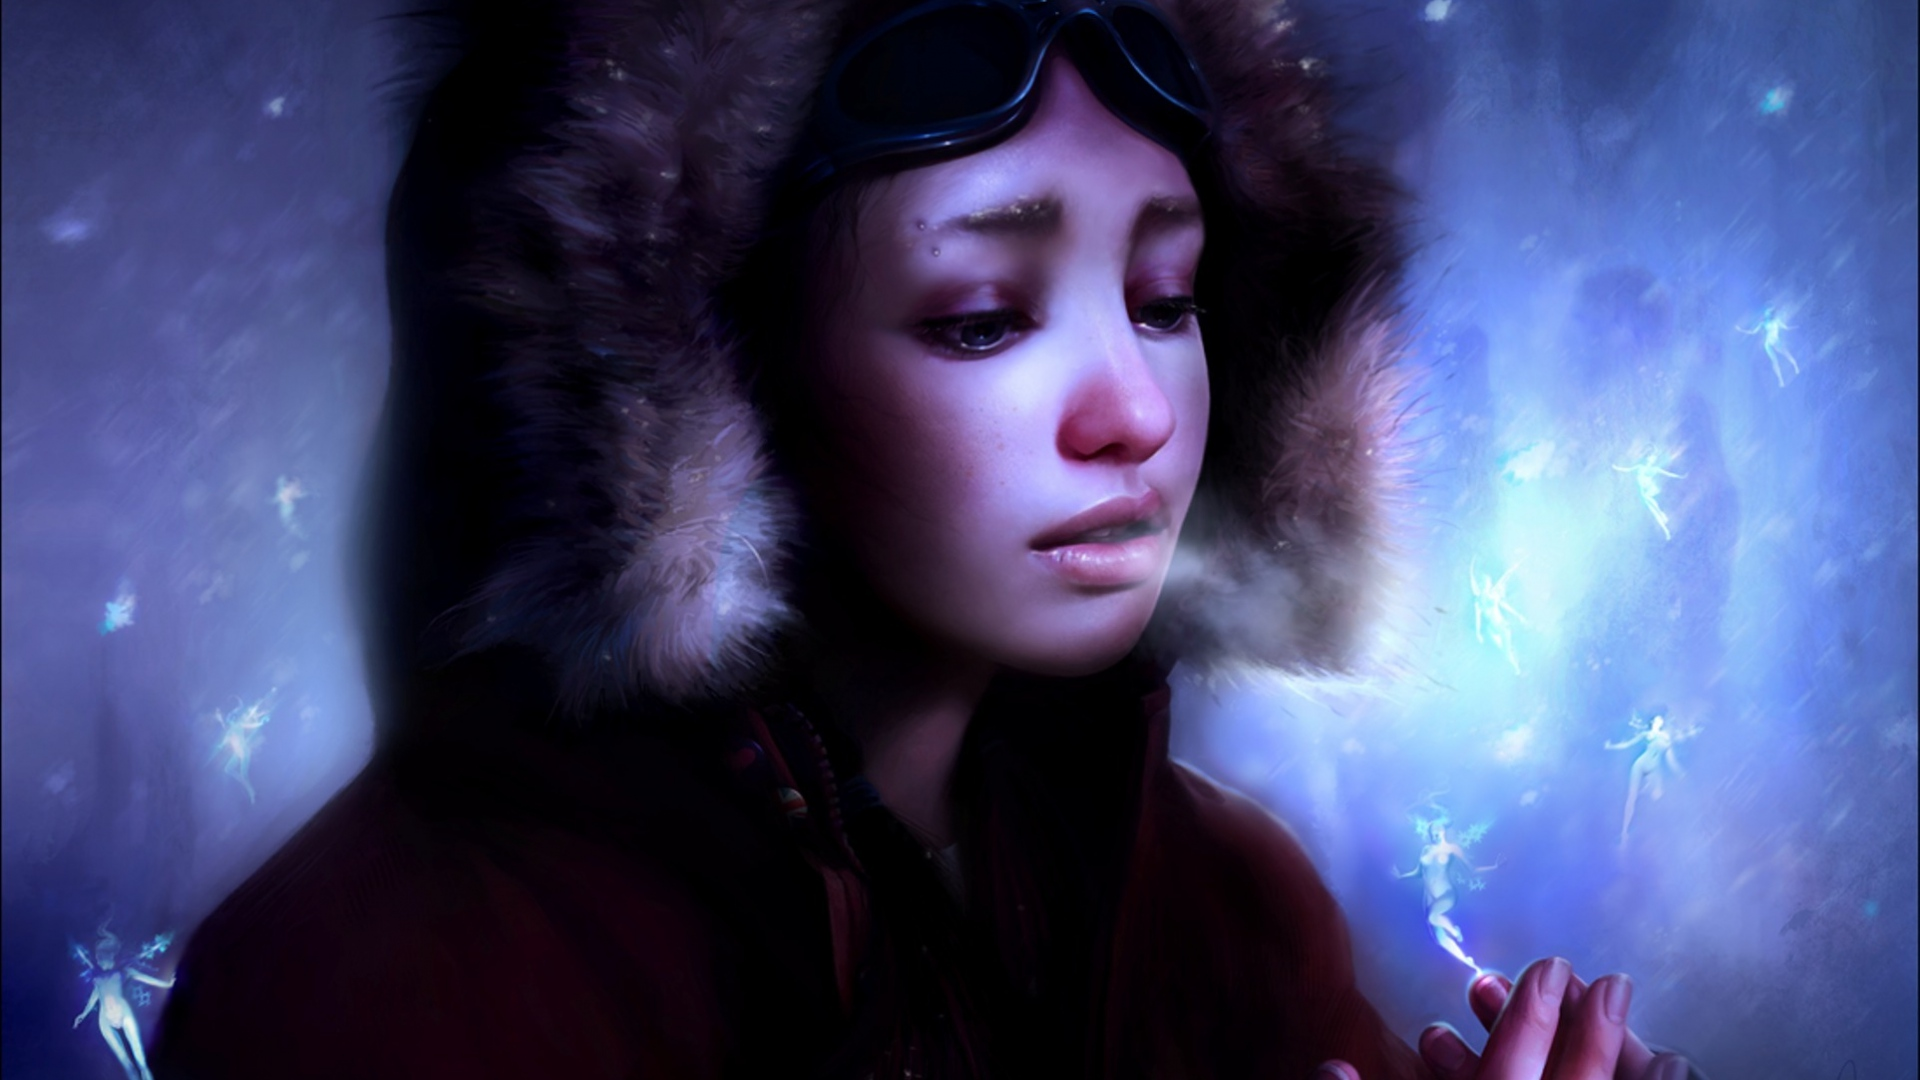 girl-hood-cold-palms-1920x1080